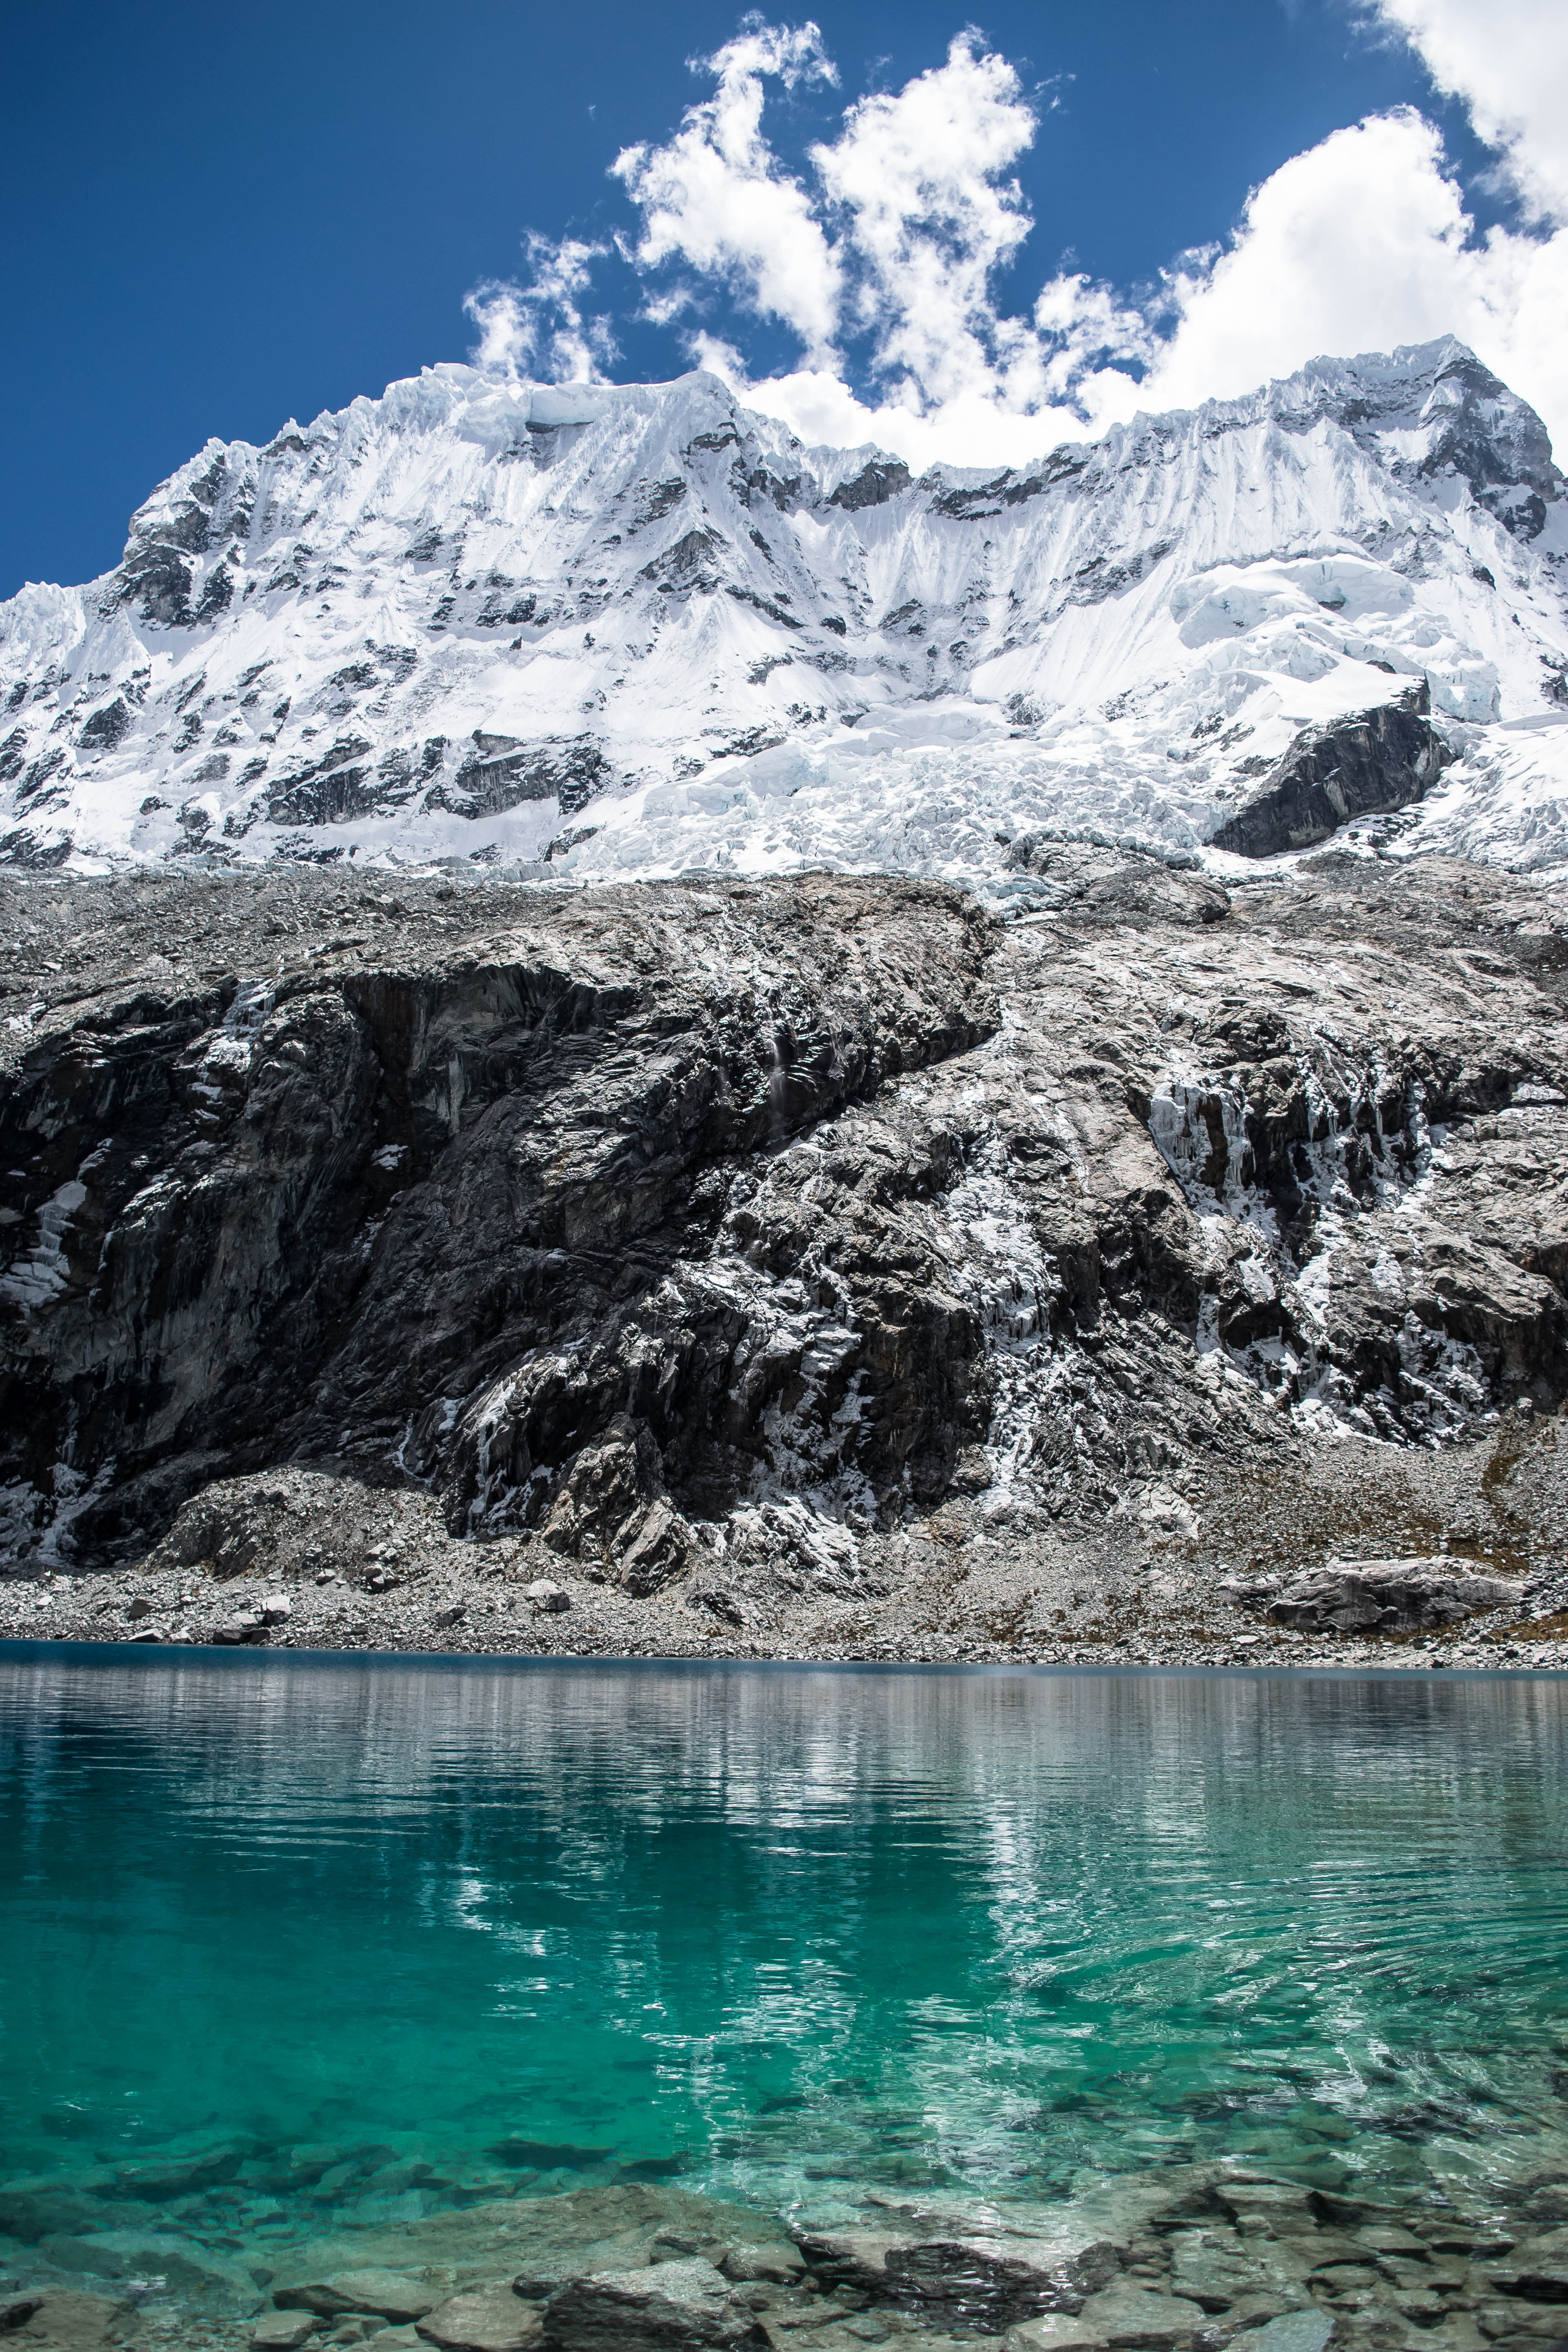 lake near mountain covered with snow